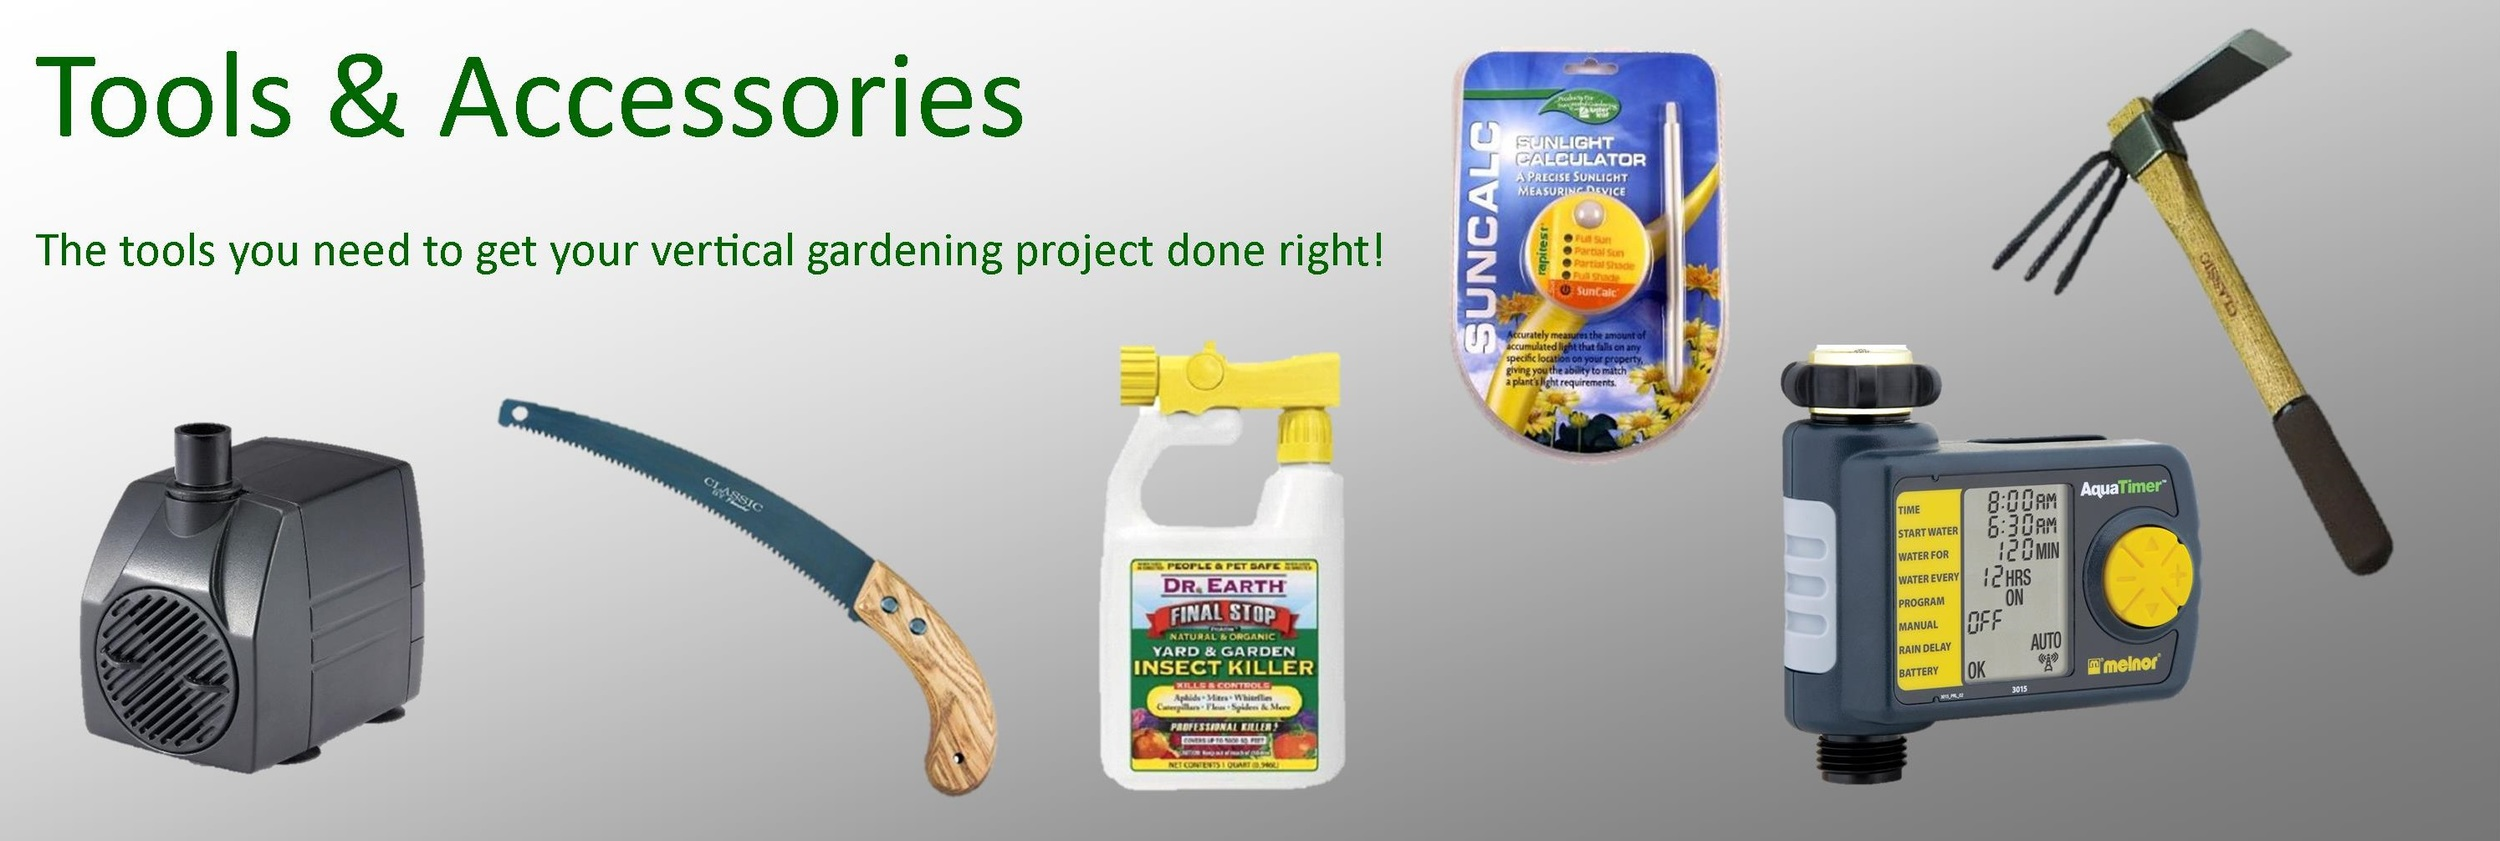 Pest & Disease Control, Hand Tools, Timers, Watering Tools